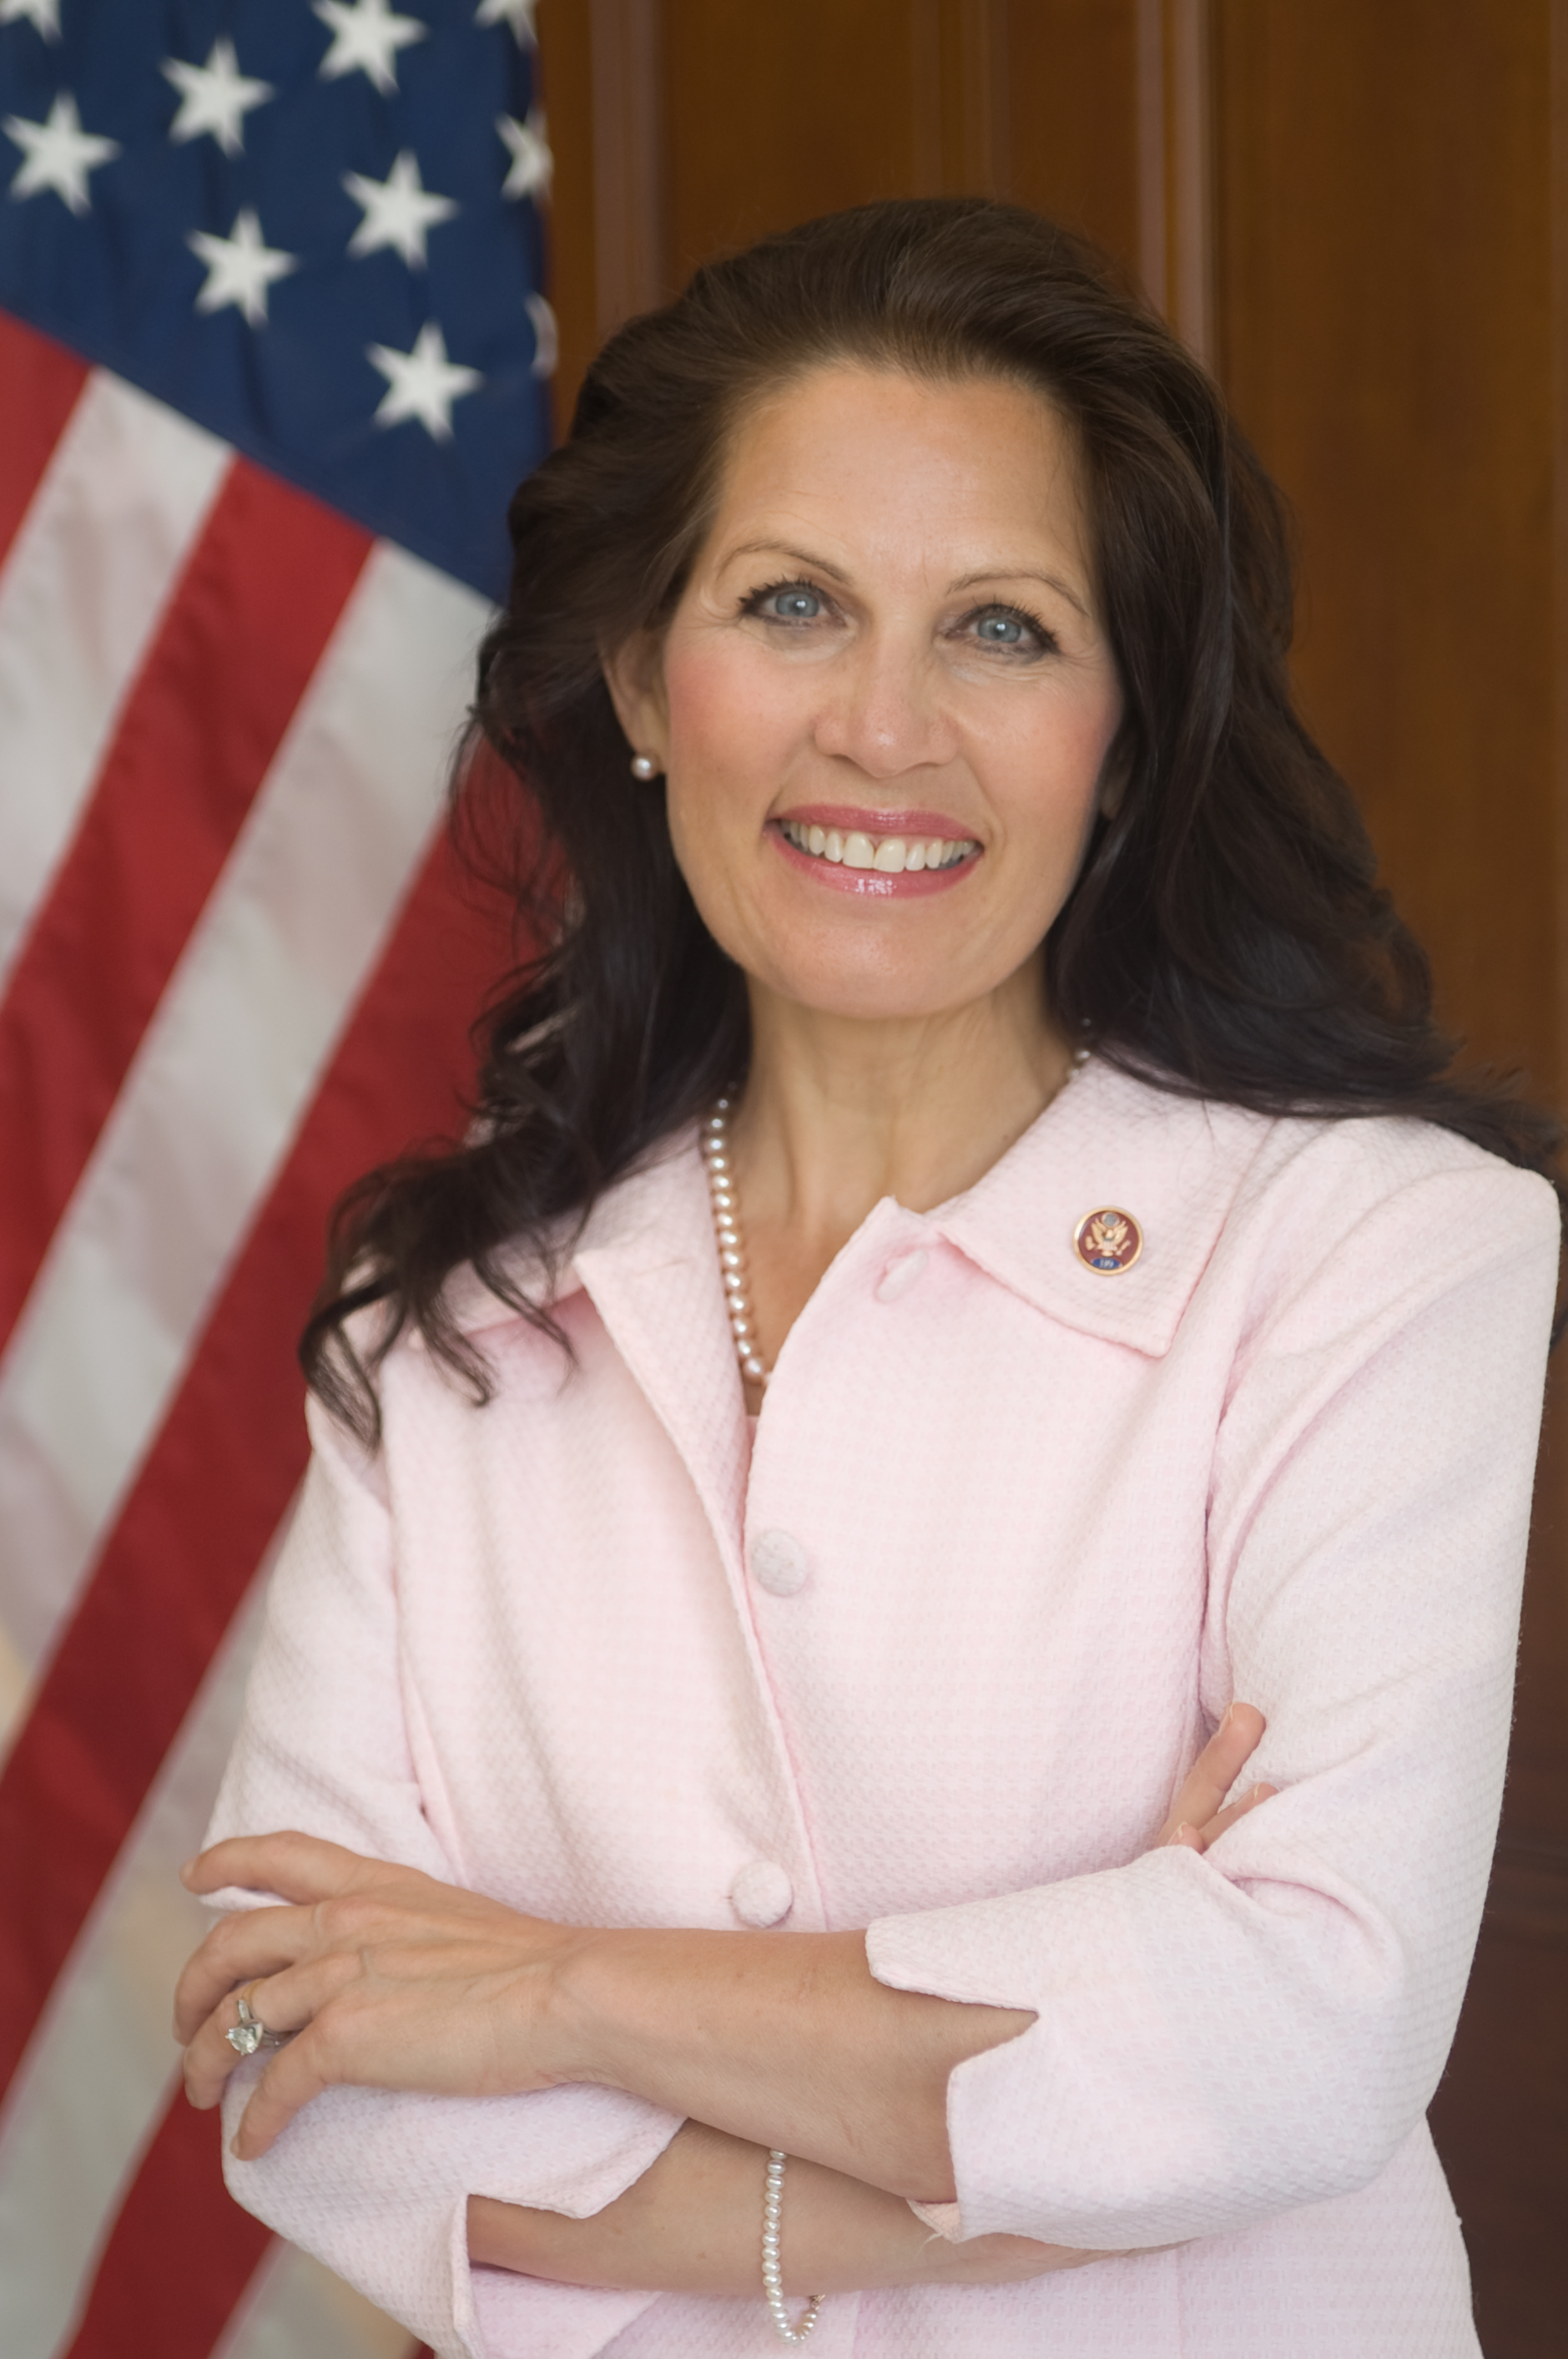 Michelle Bachman, Fetishist-in-Chief